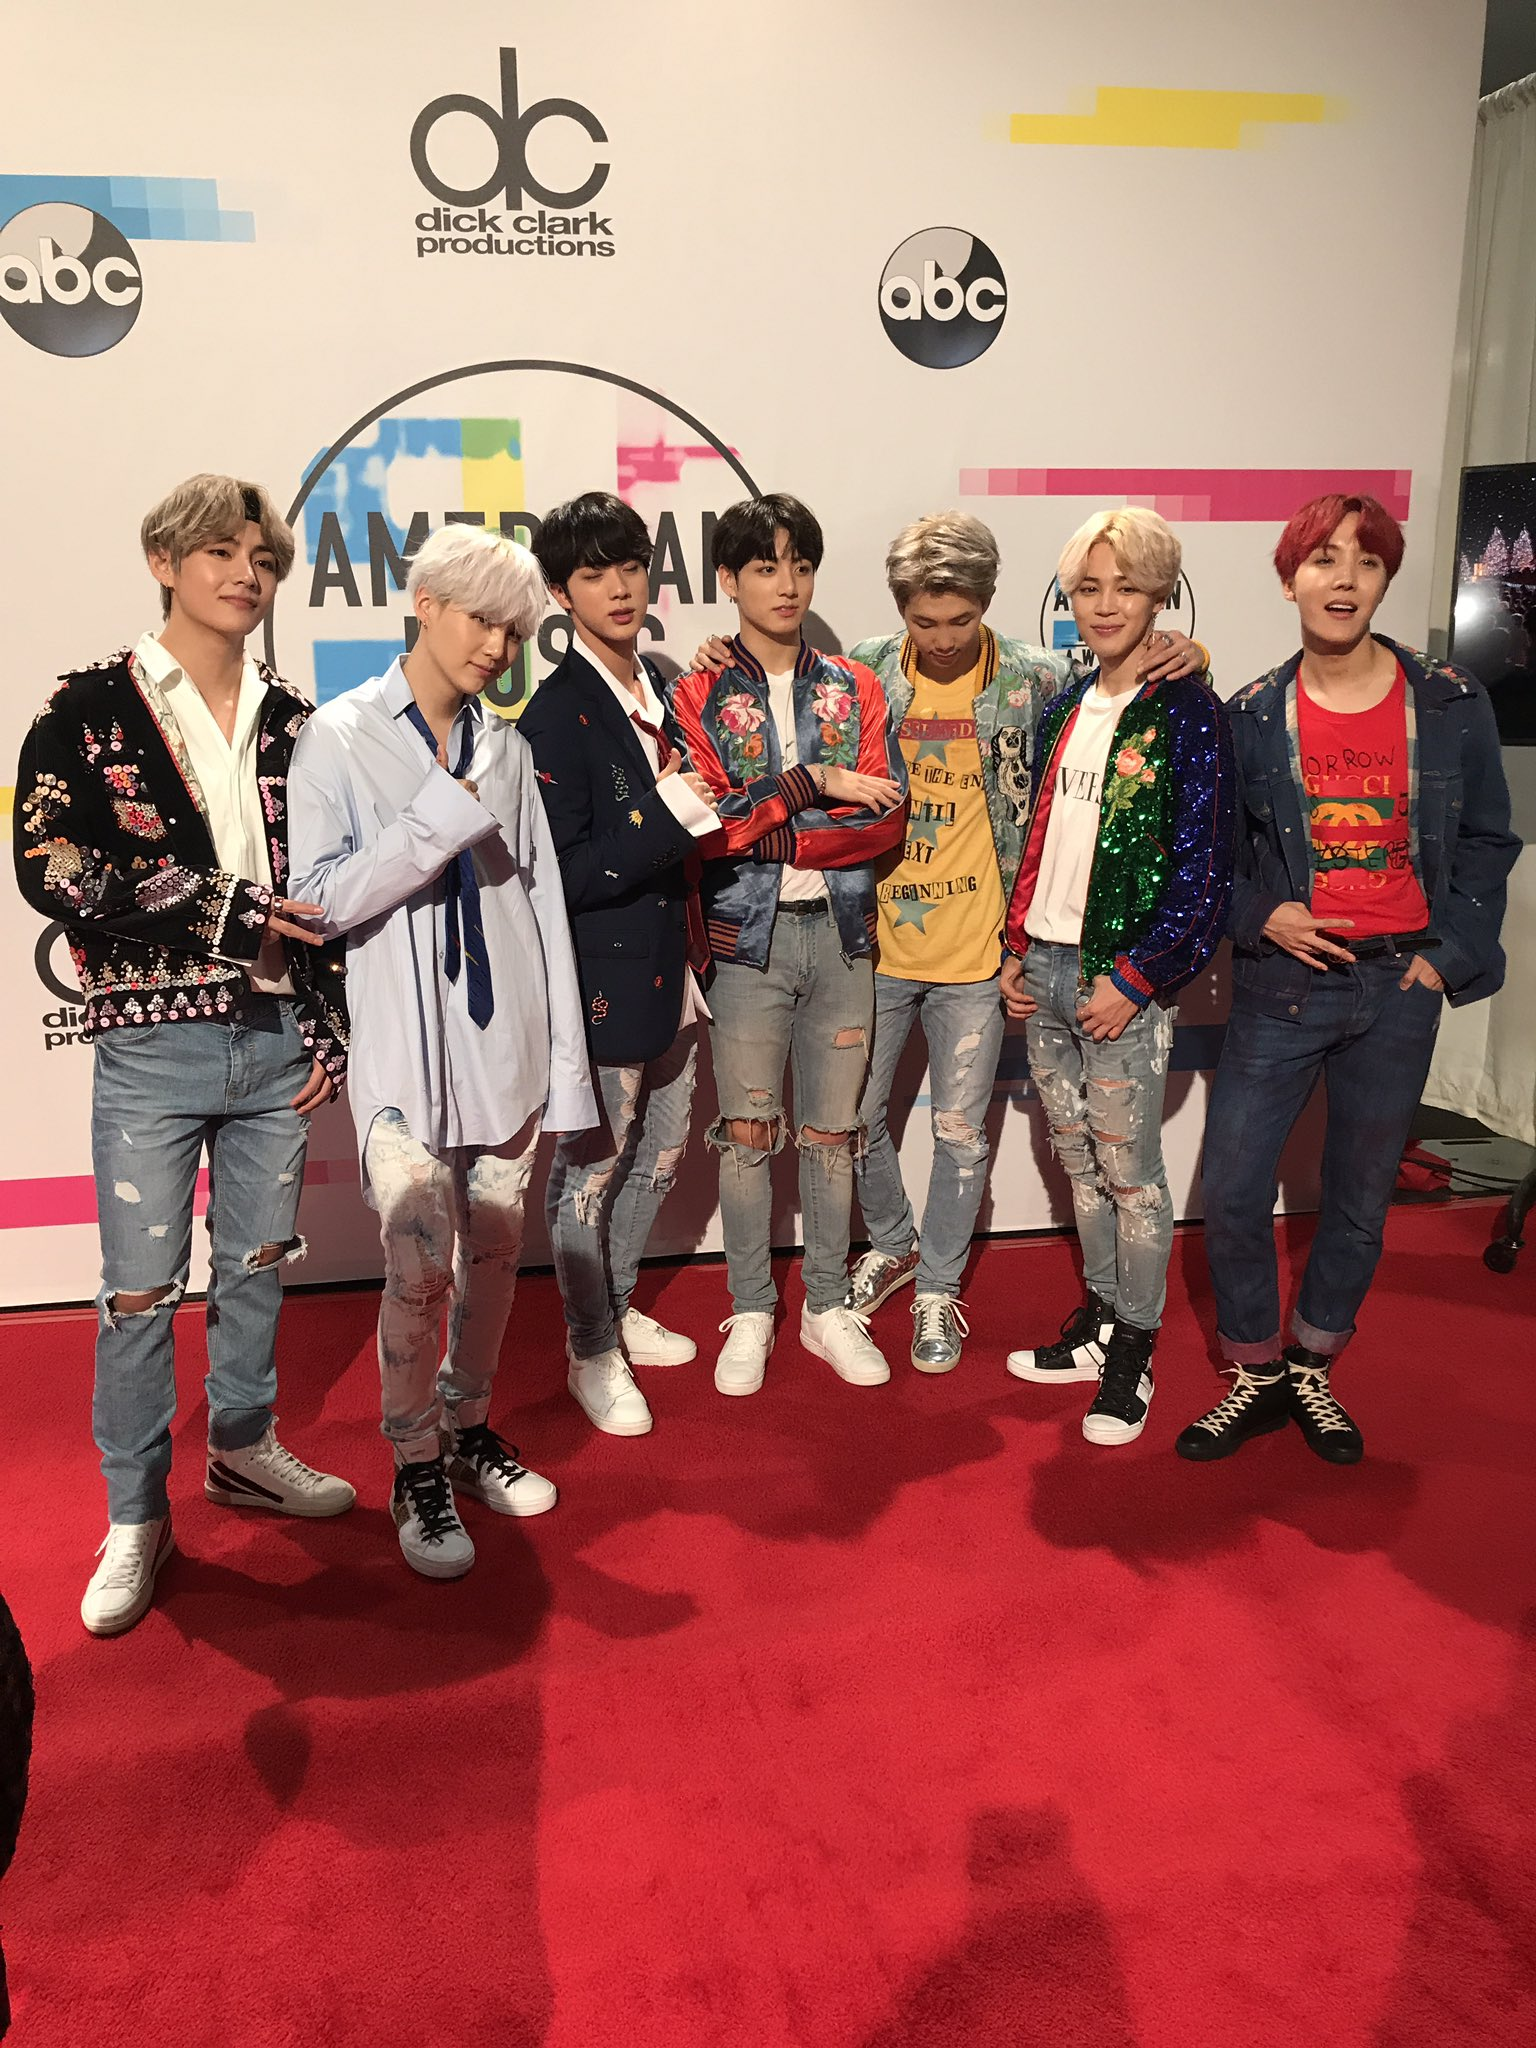 And a few more for the amazing fans of @BTS_twt @bts_bighit @BTS_ARMY at tonight's #AMAs just moments ago. https://t.co/AwW1ivPhyO